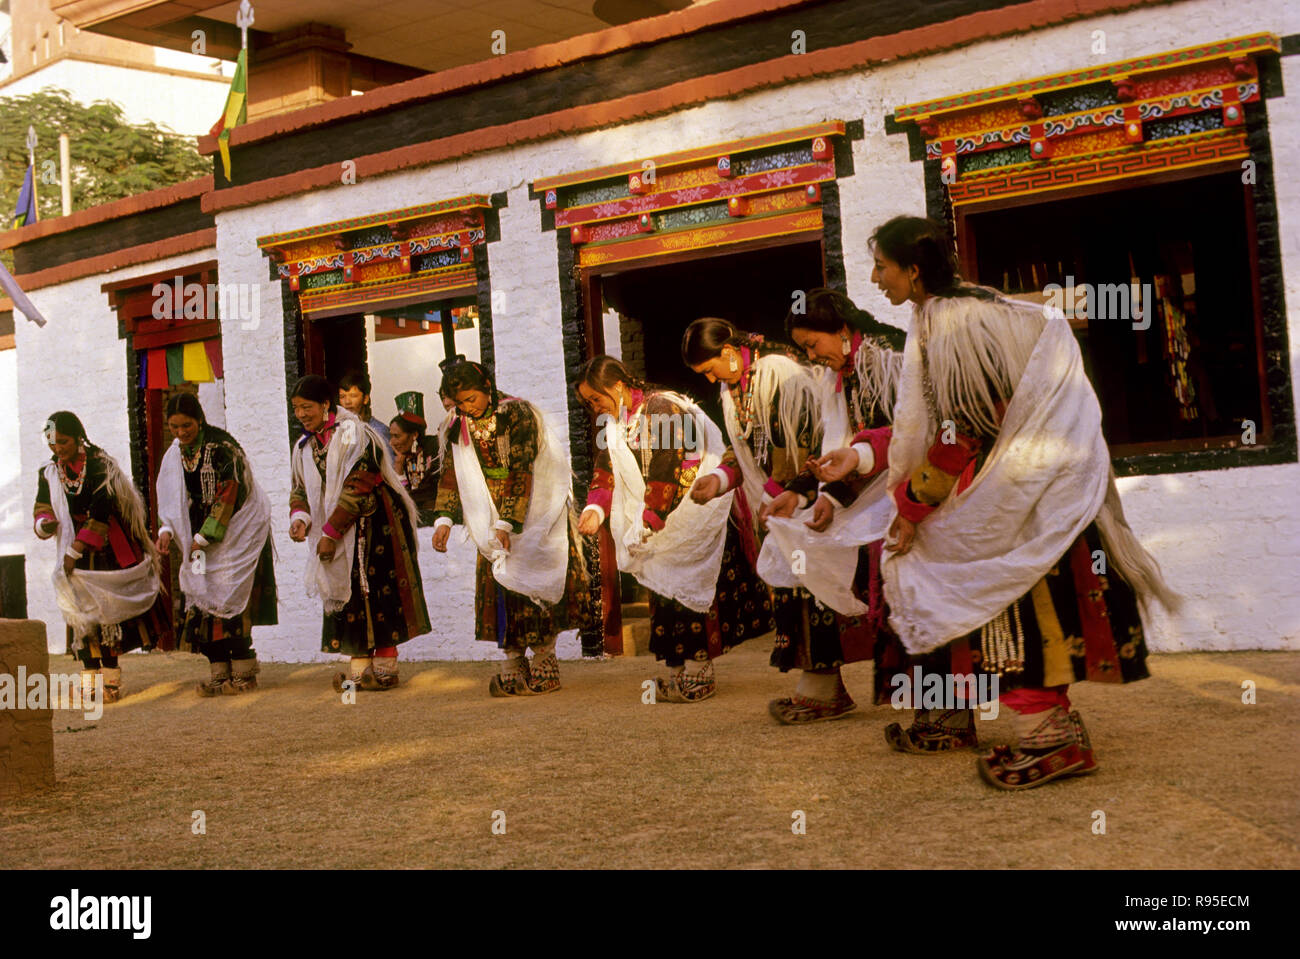 Folk Dance, Ladakh, India - Stock Image